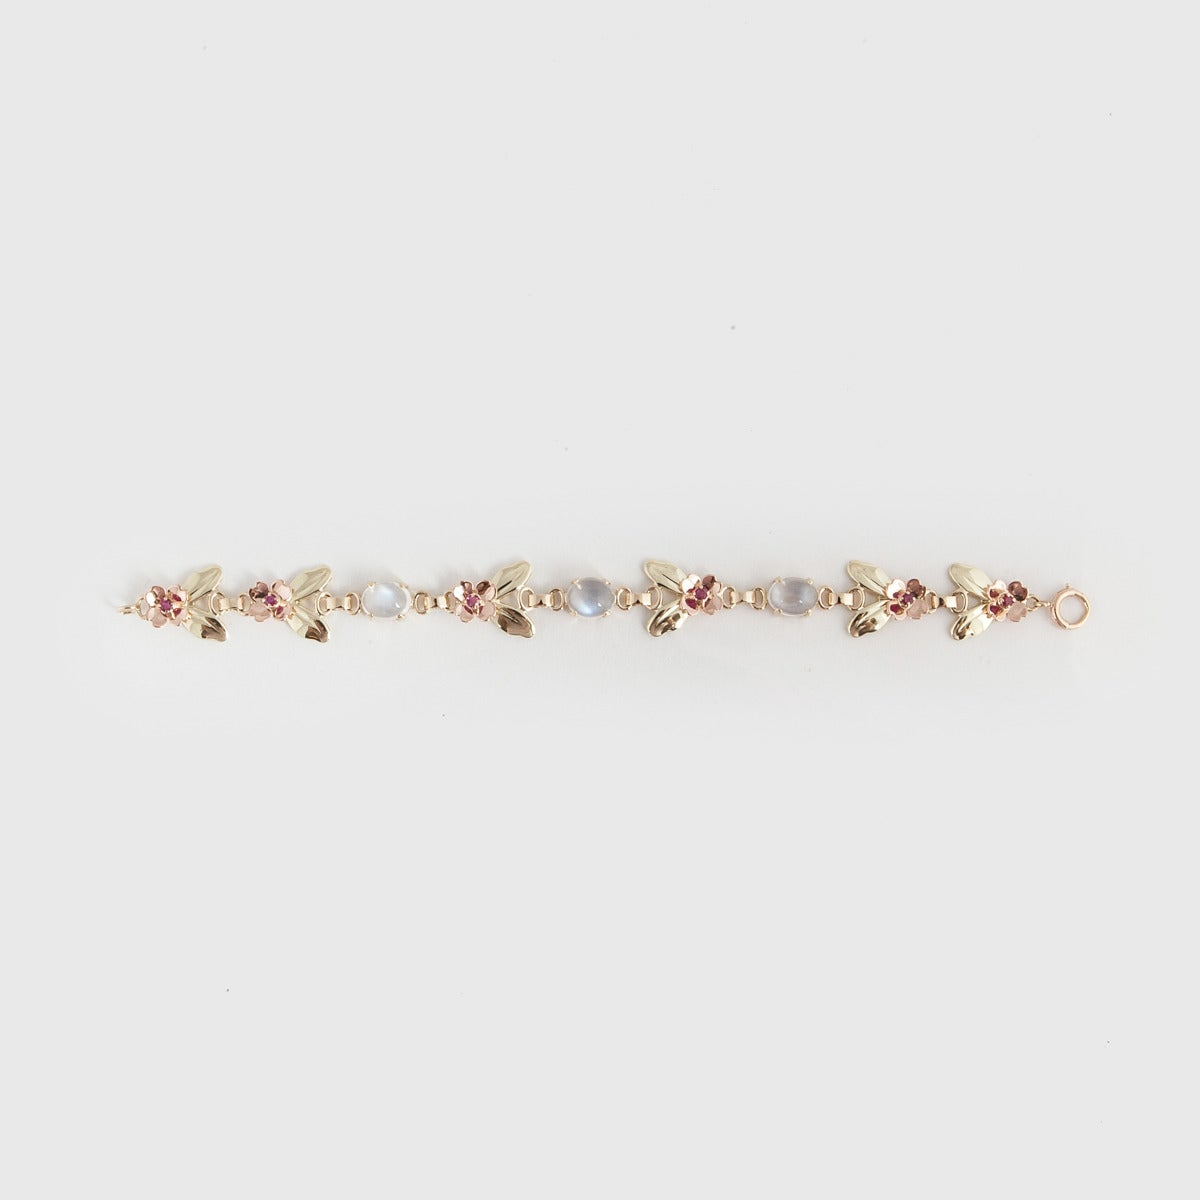 Tiffany & Co. Retro Moonstone Gold Link Bracelet In Excellent Condition For Sale In Houston, TX